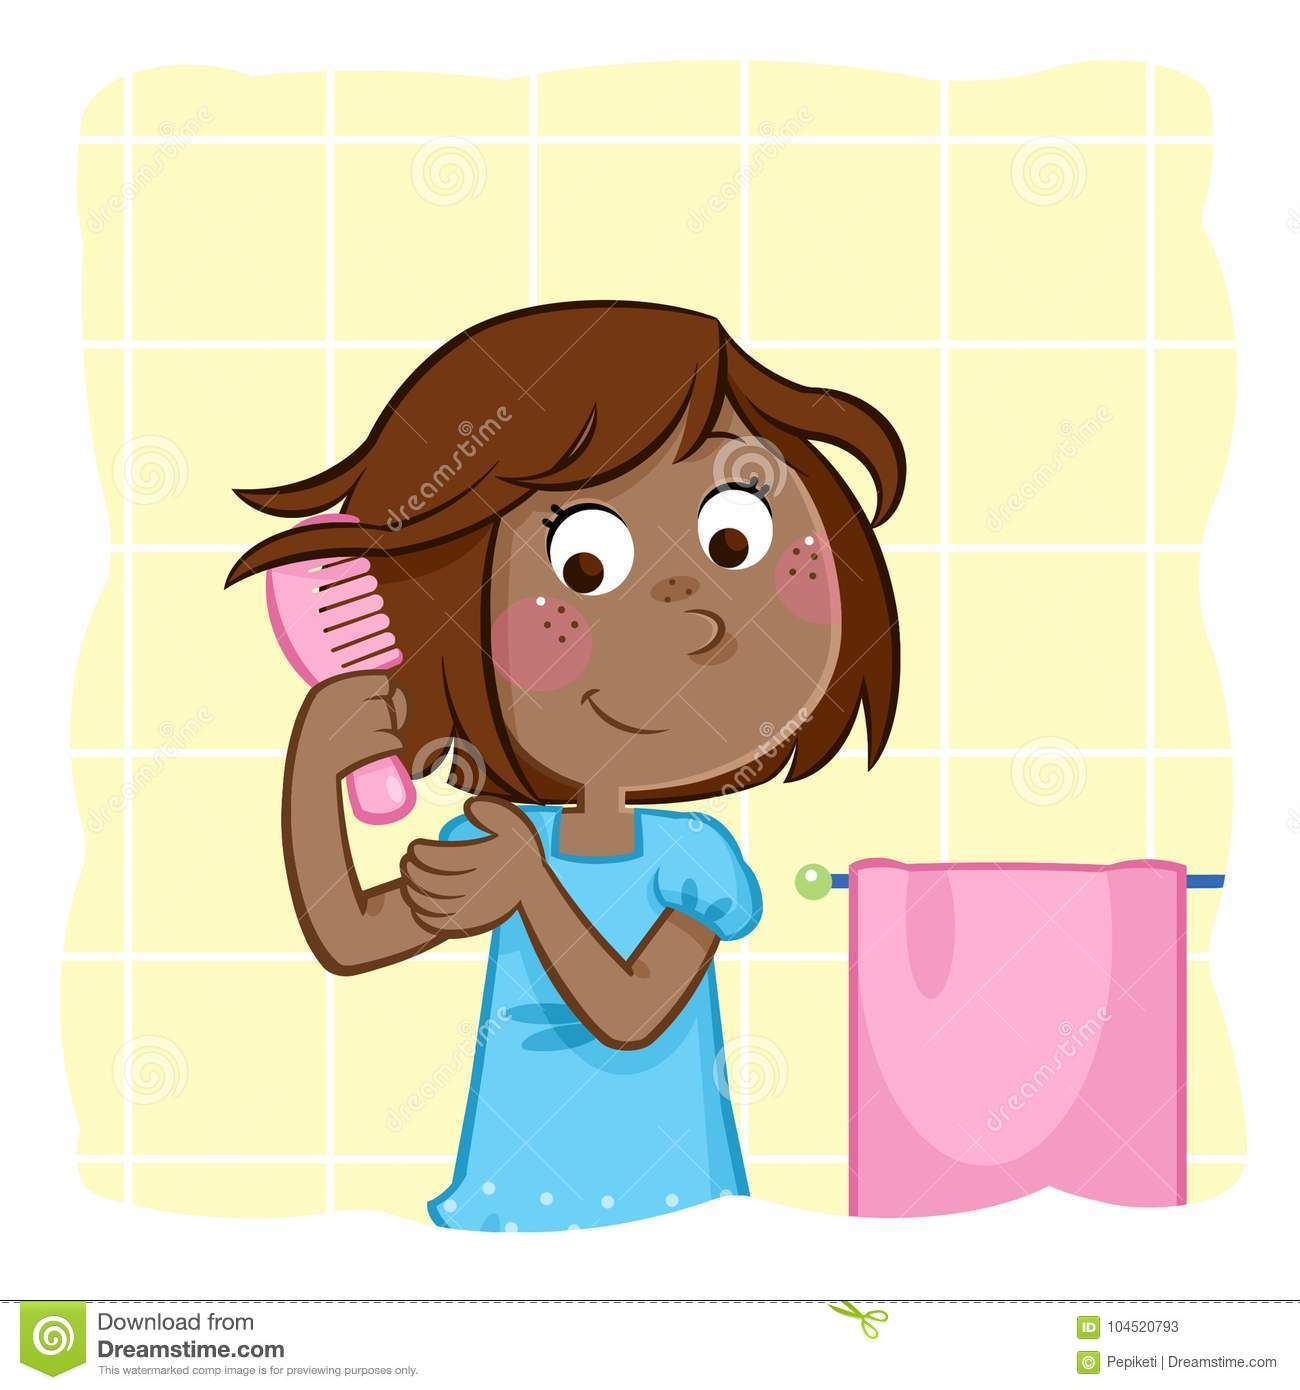 Combing Hair Stock Illustrations 802 Combing Hair Stock Illustrations Vectors Clipart Dreamstime